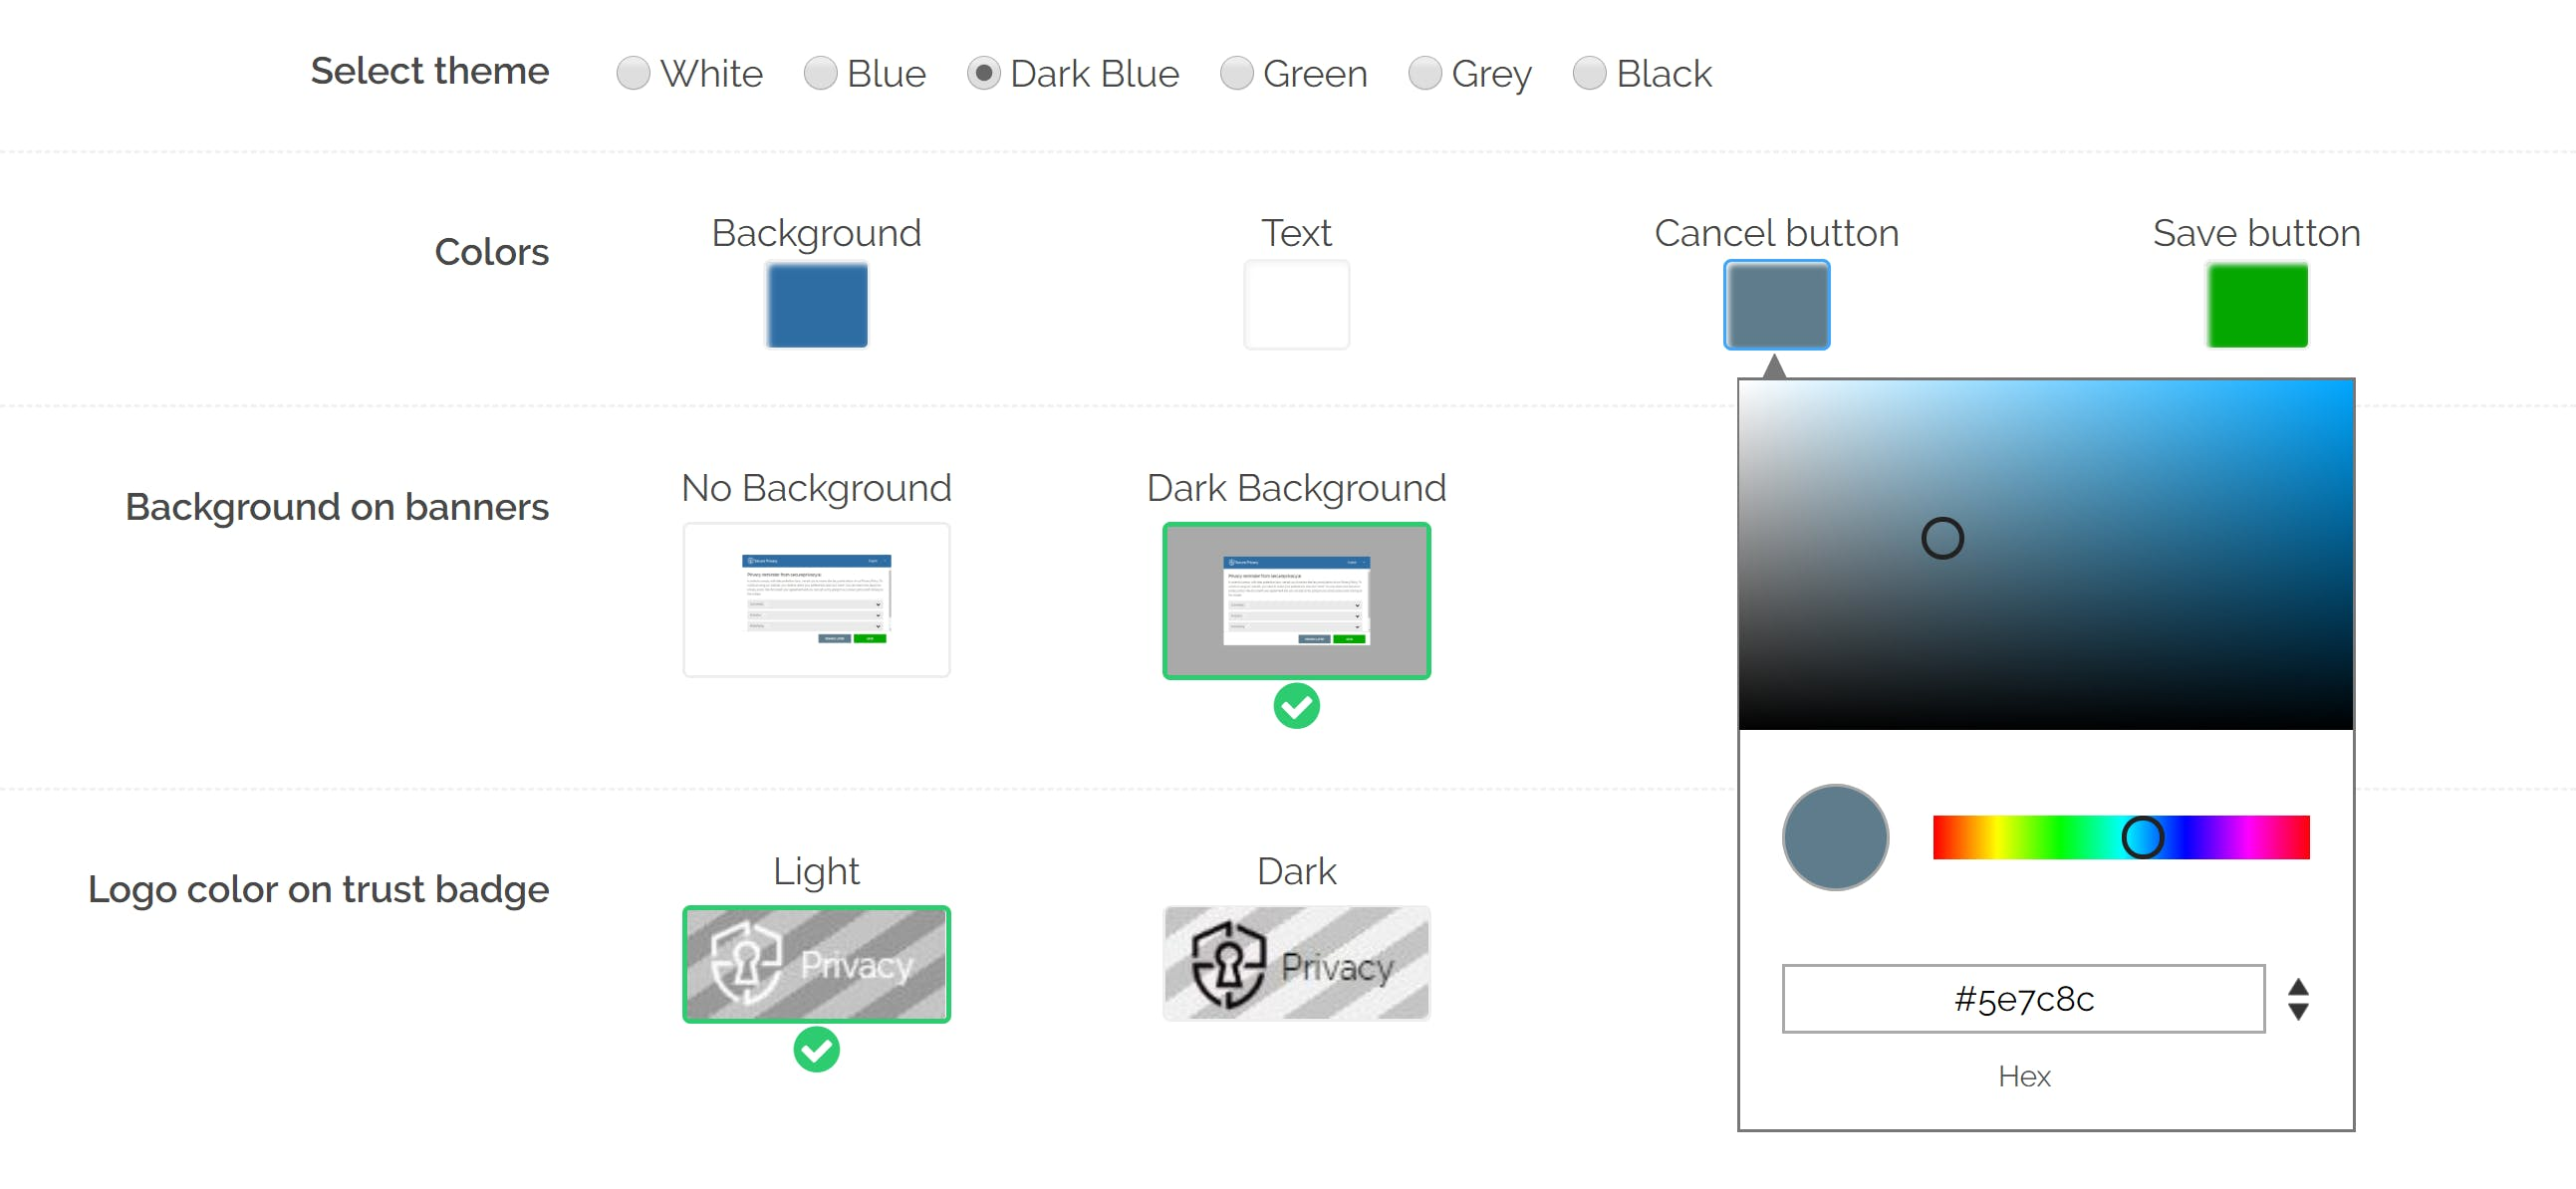 CSS customization options secure privacy